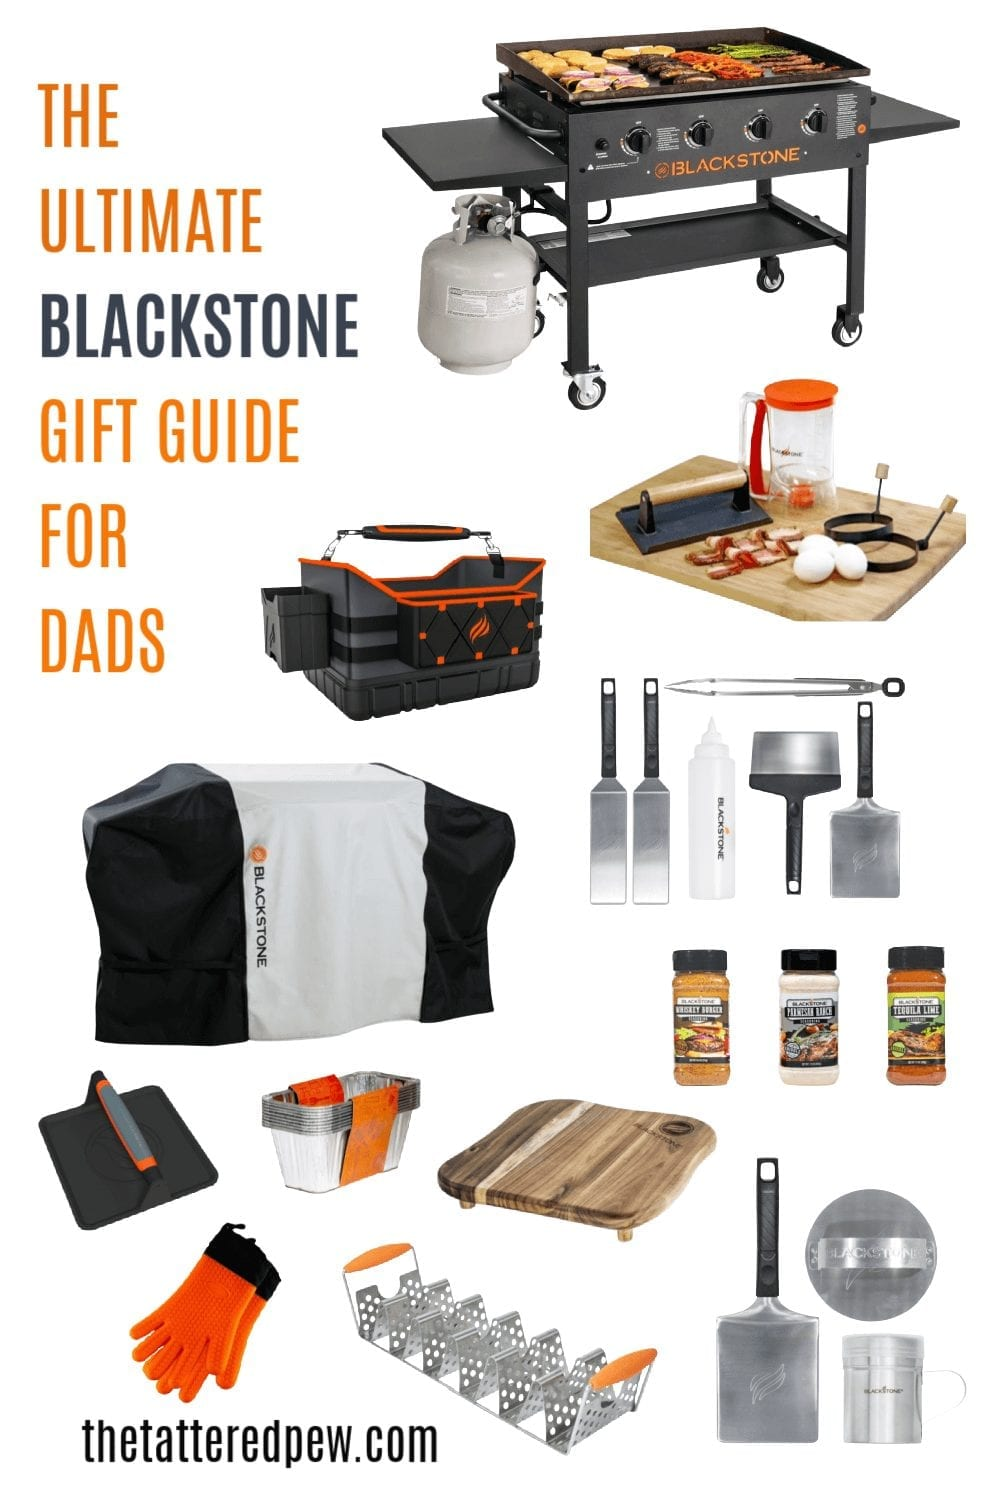 This is the ulitmate Blackstone gift guide for dads!